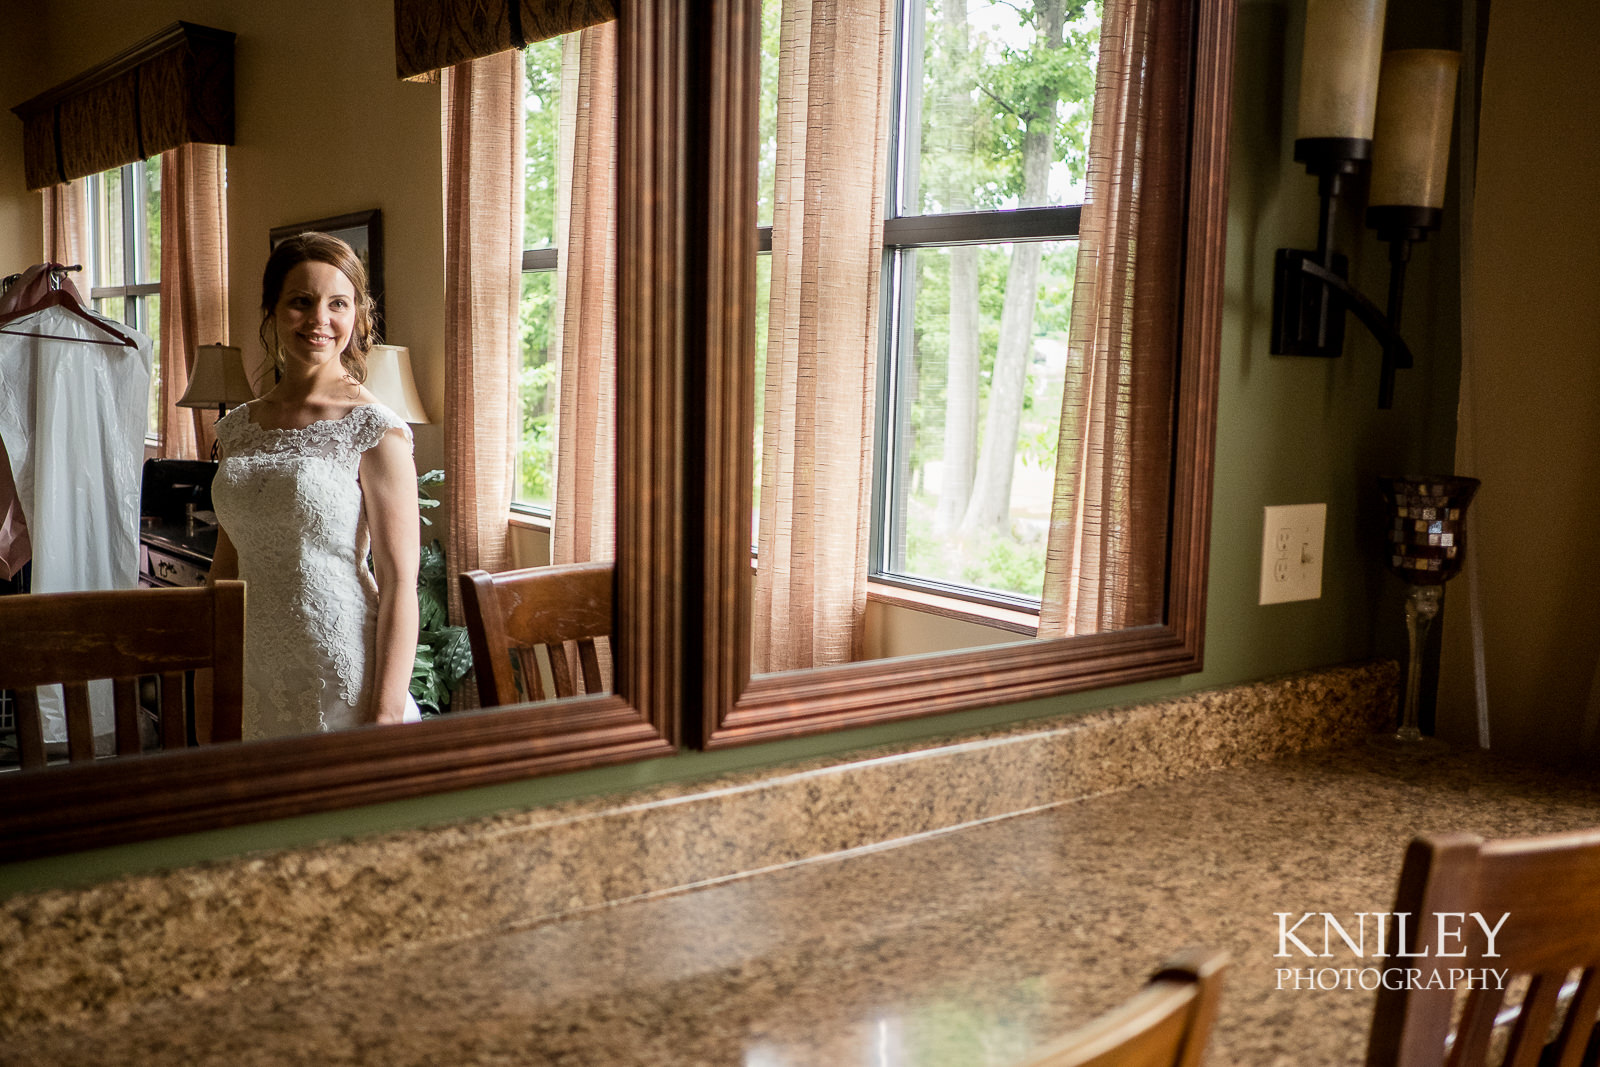 018 - Ravenwood Golf Club wedding pictures - Rochester NY - Kniley Photography - XT2A0413.jpg